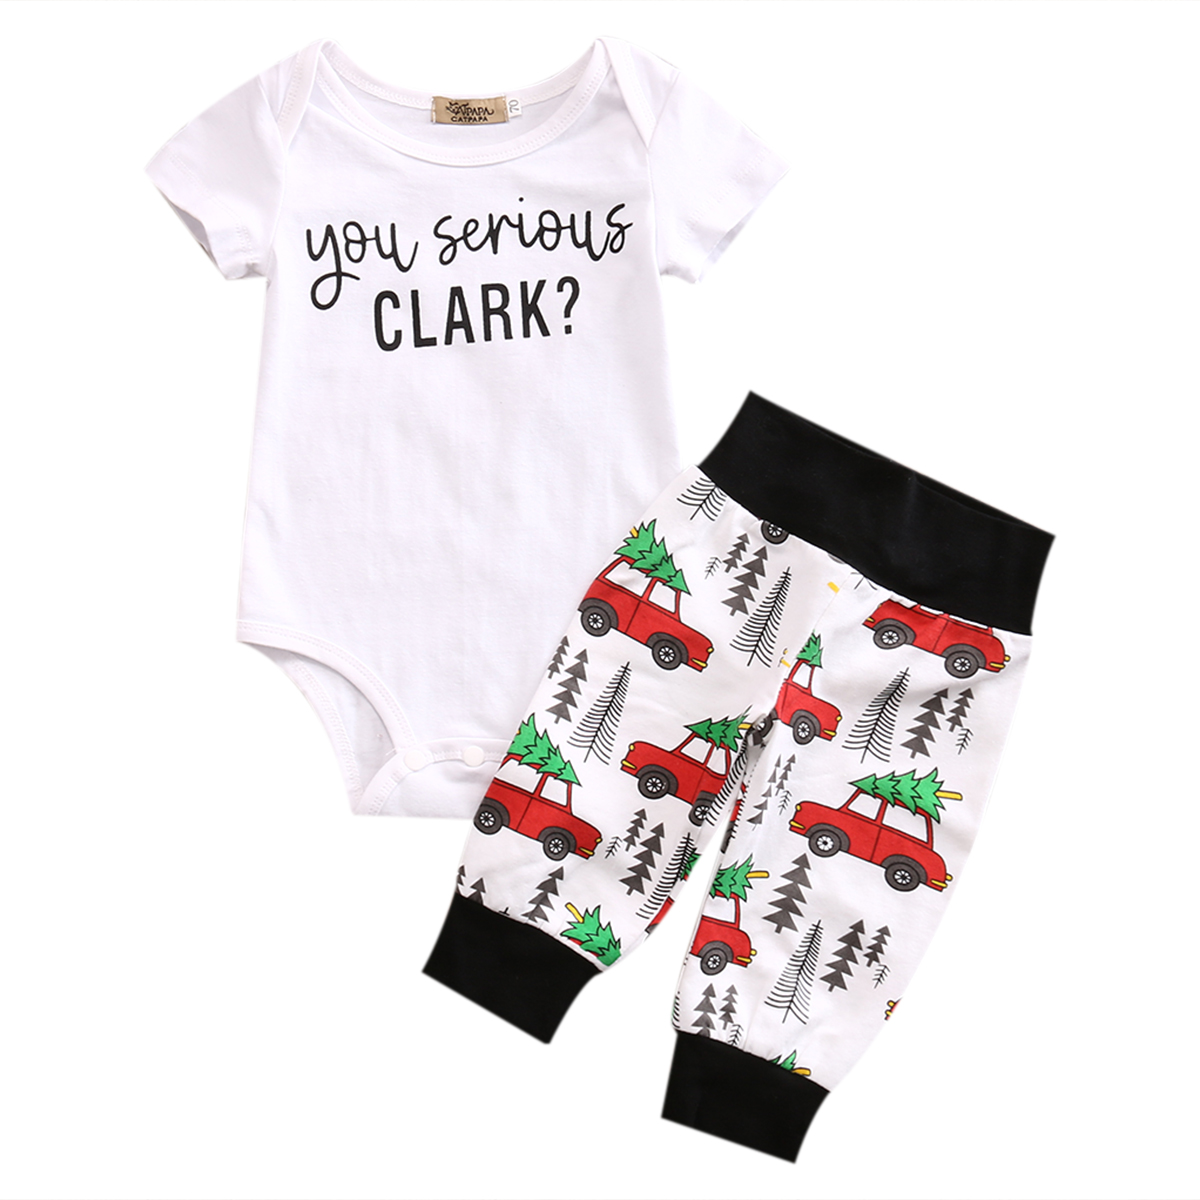 Christmas-Cute-Newborn-Infant-Baby-Boy-Girl-Clothes-Romper-Tops-Bus-Long-Pants-2PCS-Outfit-Set-Baby-Clothing-1